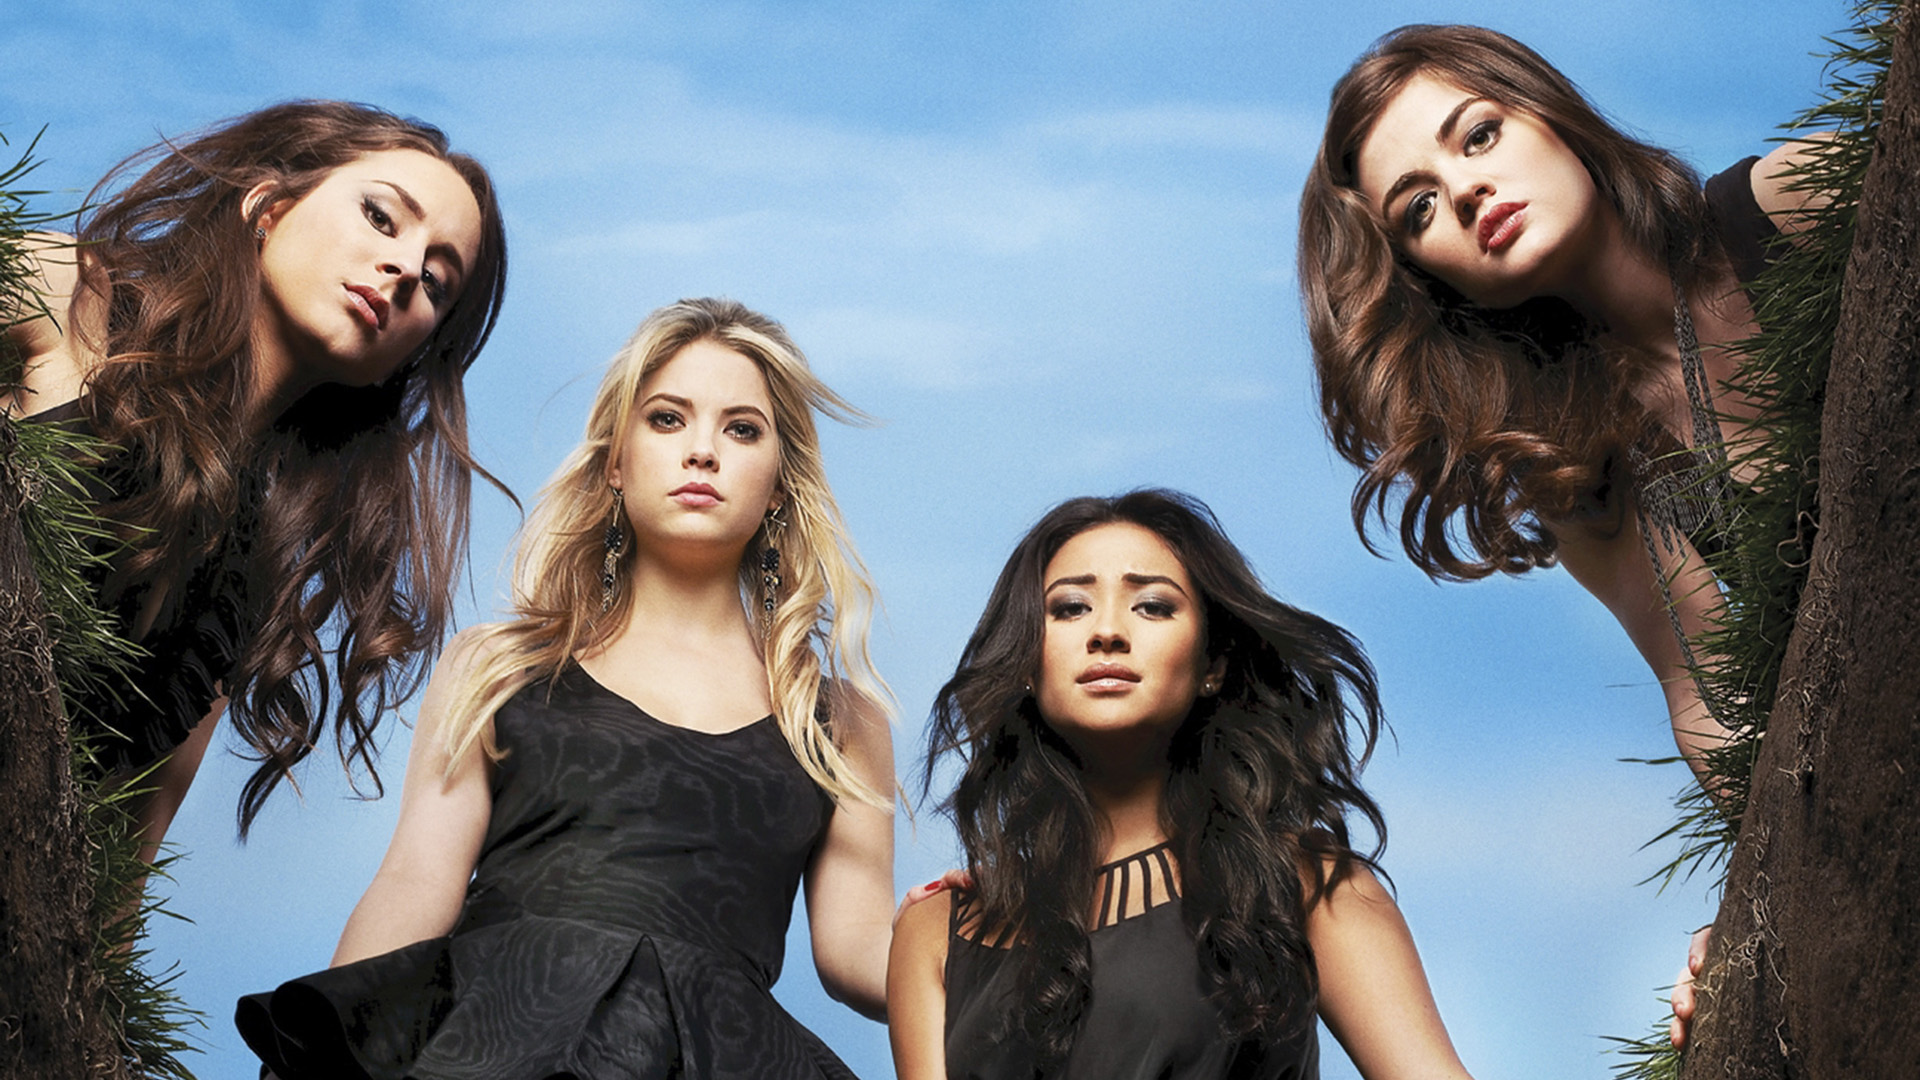 Pretty%20Little%20Liars%20S03E24%20Season%20Finale%201080p%20WEB-DL%20DD5.1%20H.264-HKD.jpg